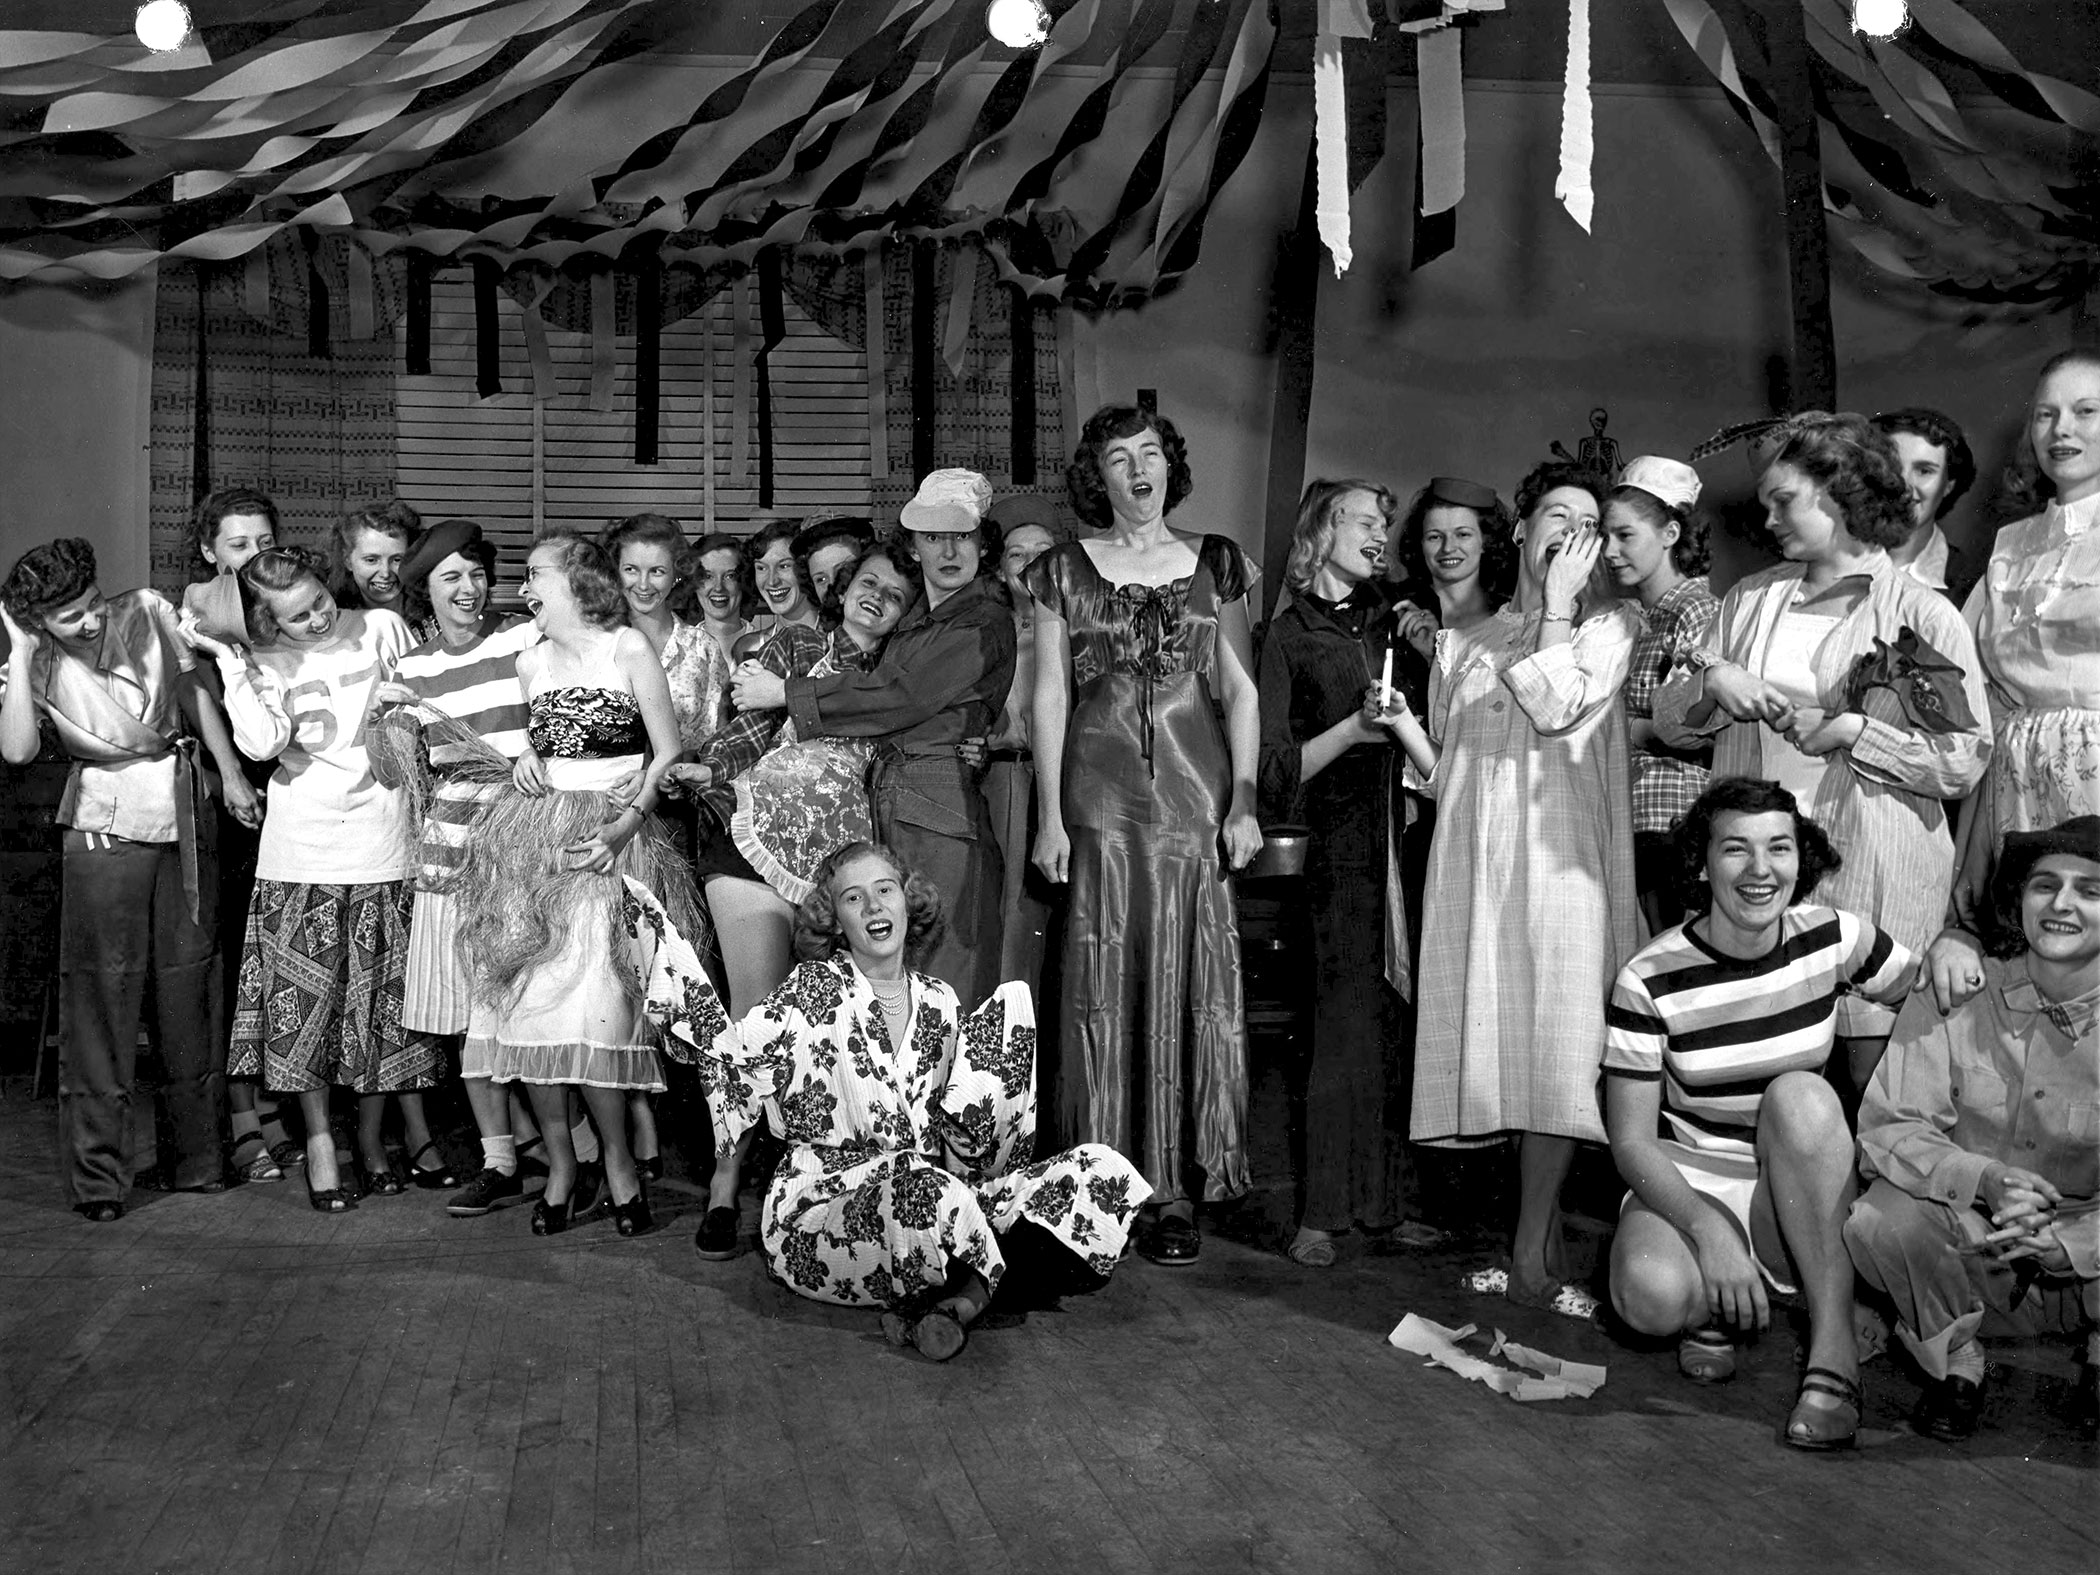 A large group of women wear costumes, perhaps for a skit or a party. Streamers hang from the ceiling. Circa 1947.